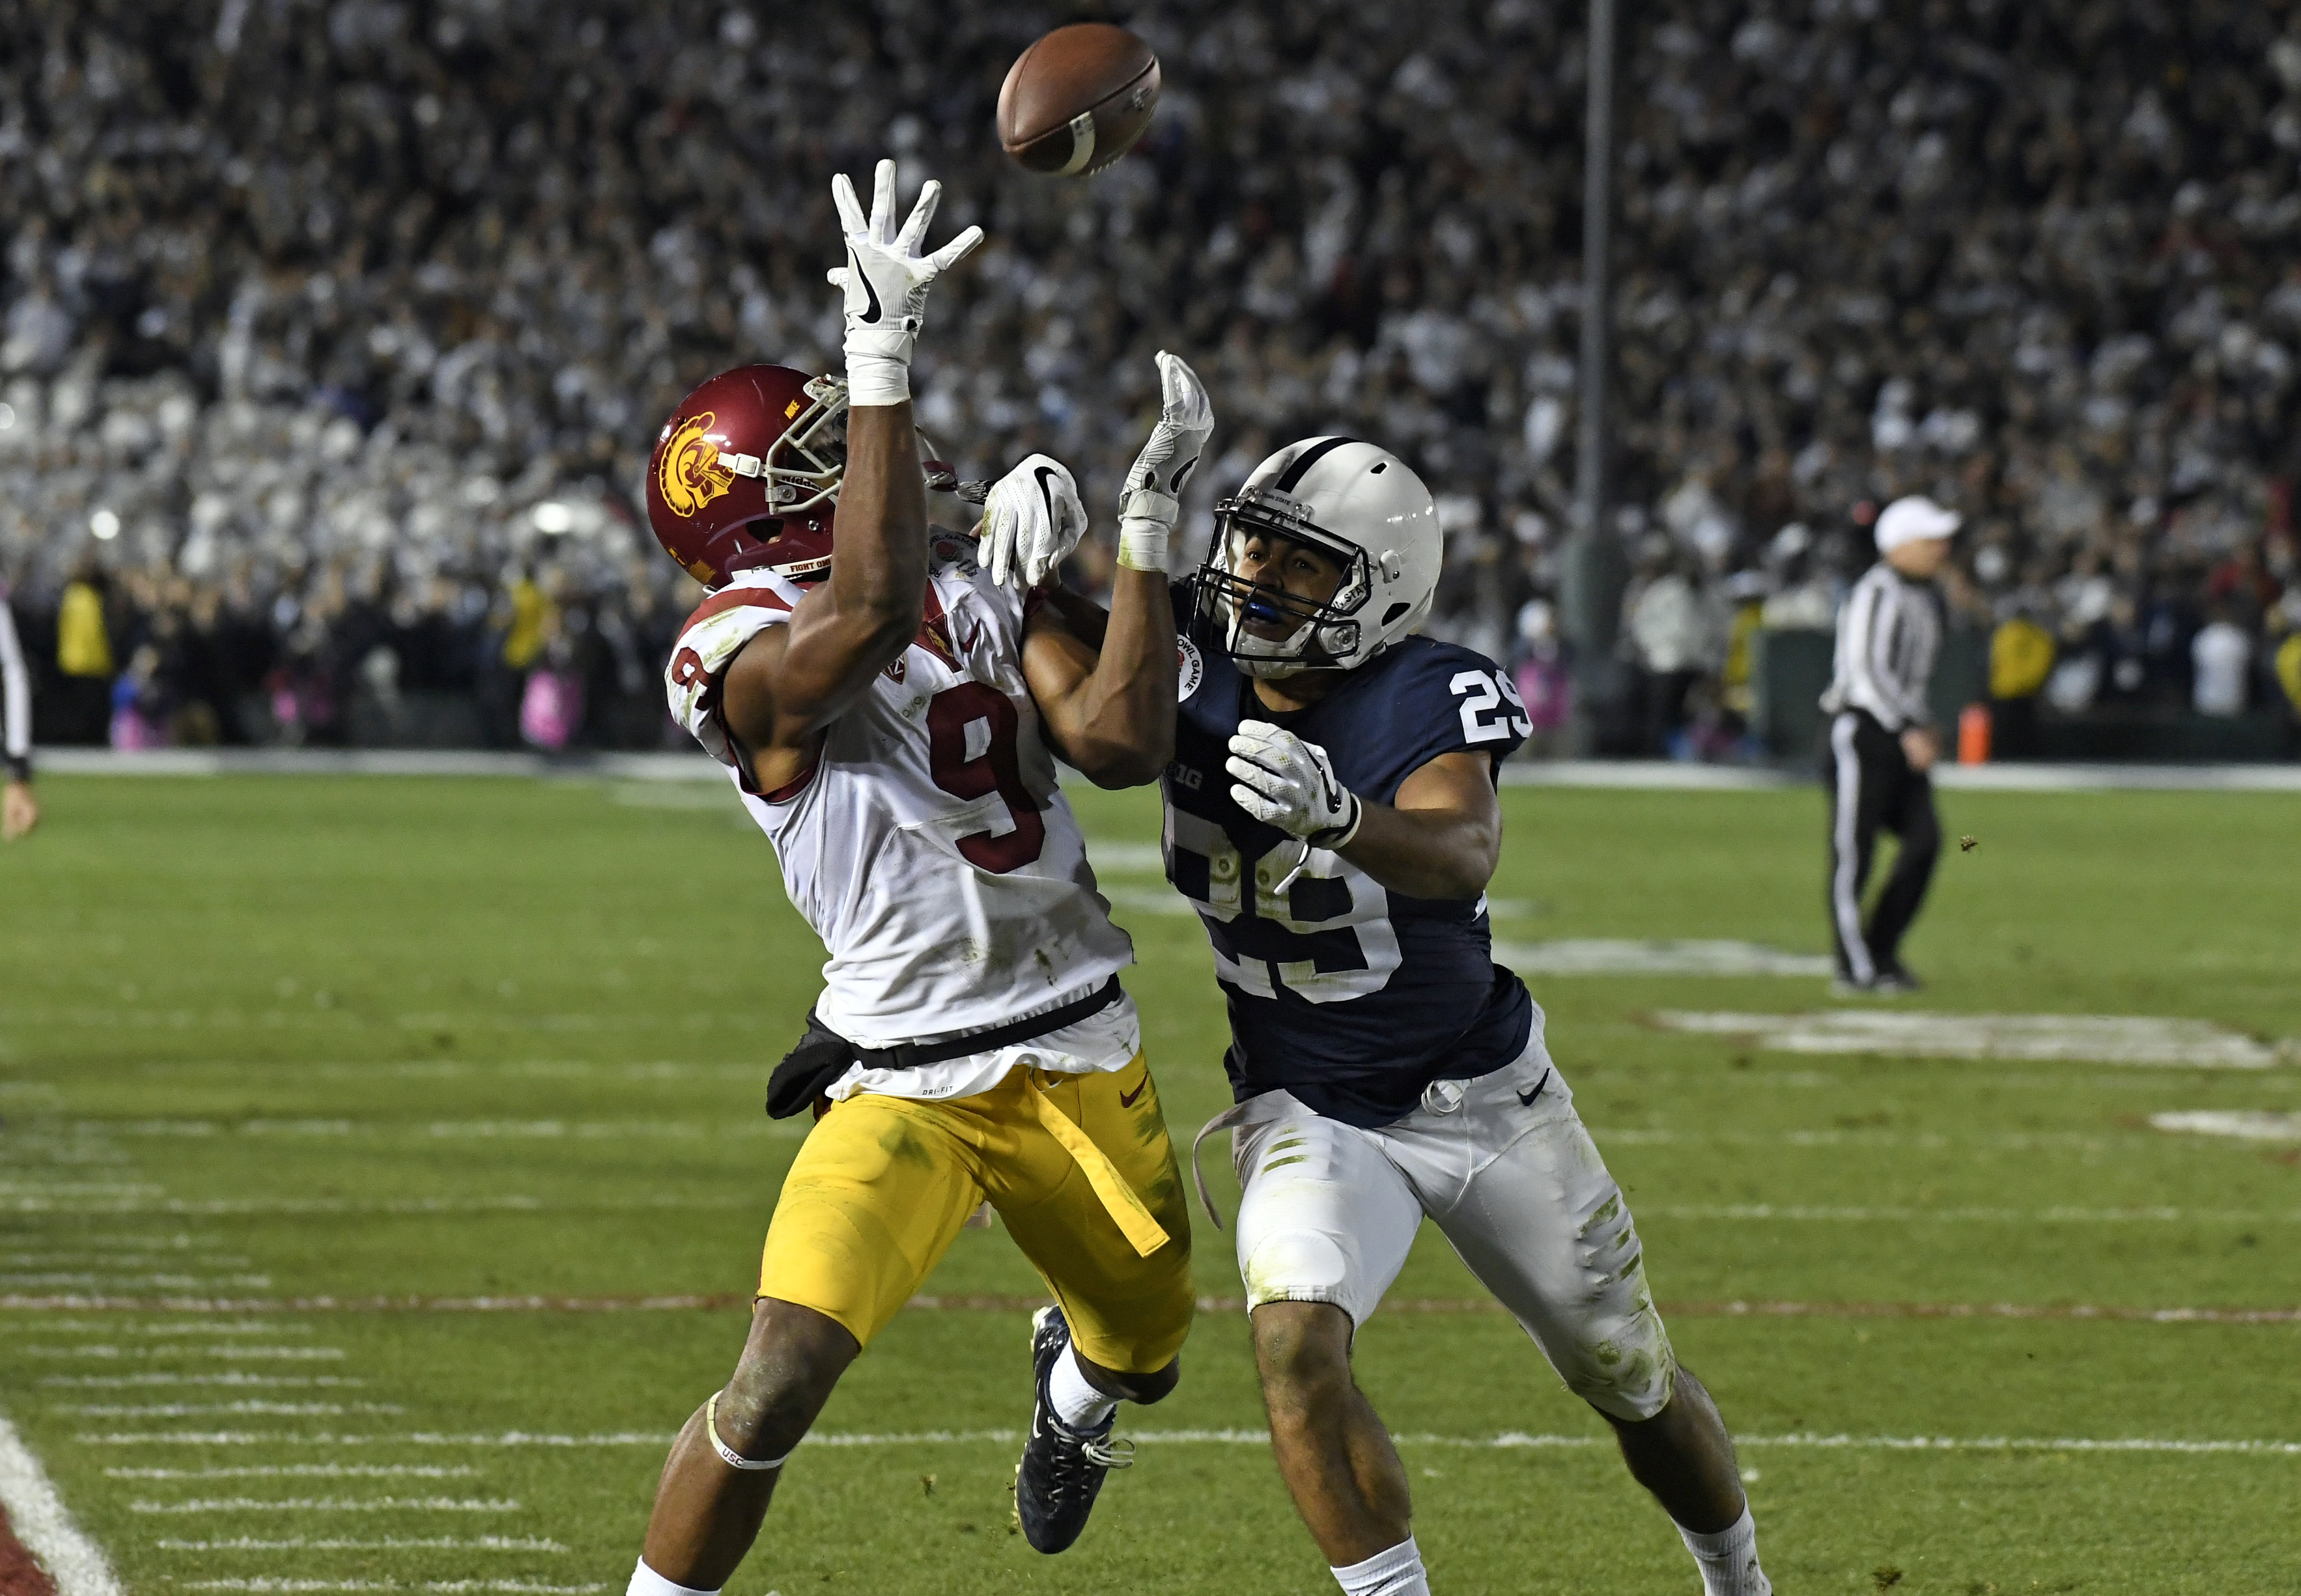 9784932-ncaa-football-rose-bowl-game-penn-state-vs-southern-california